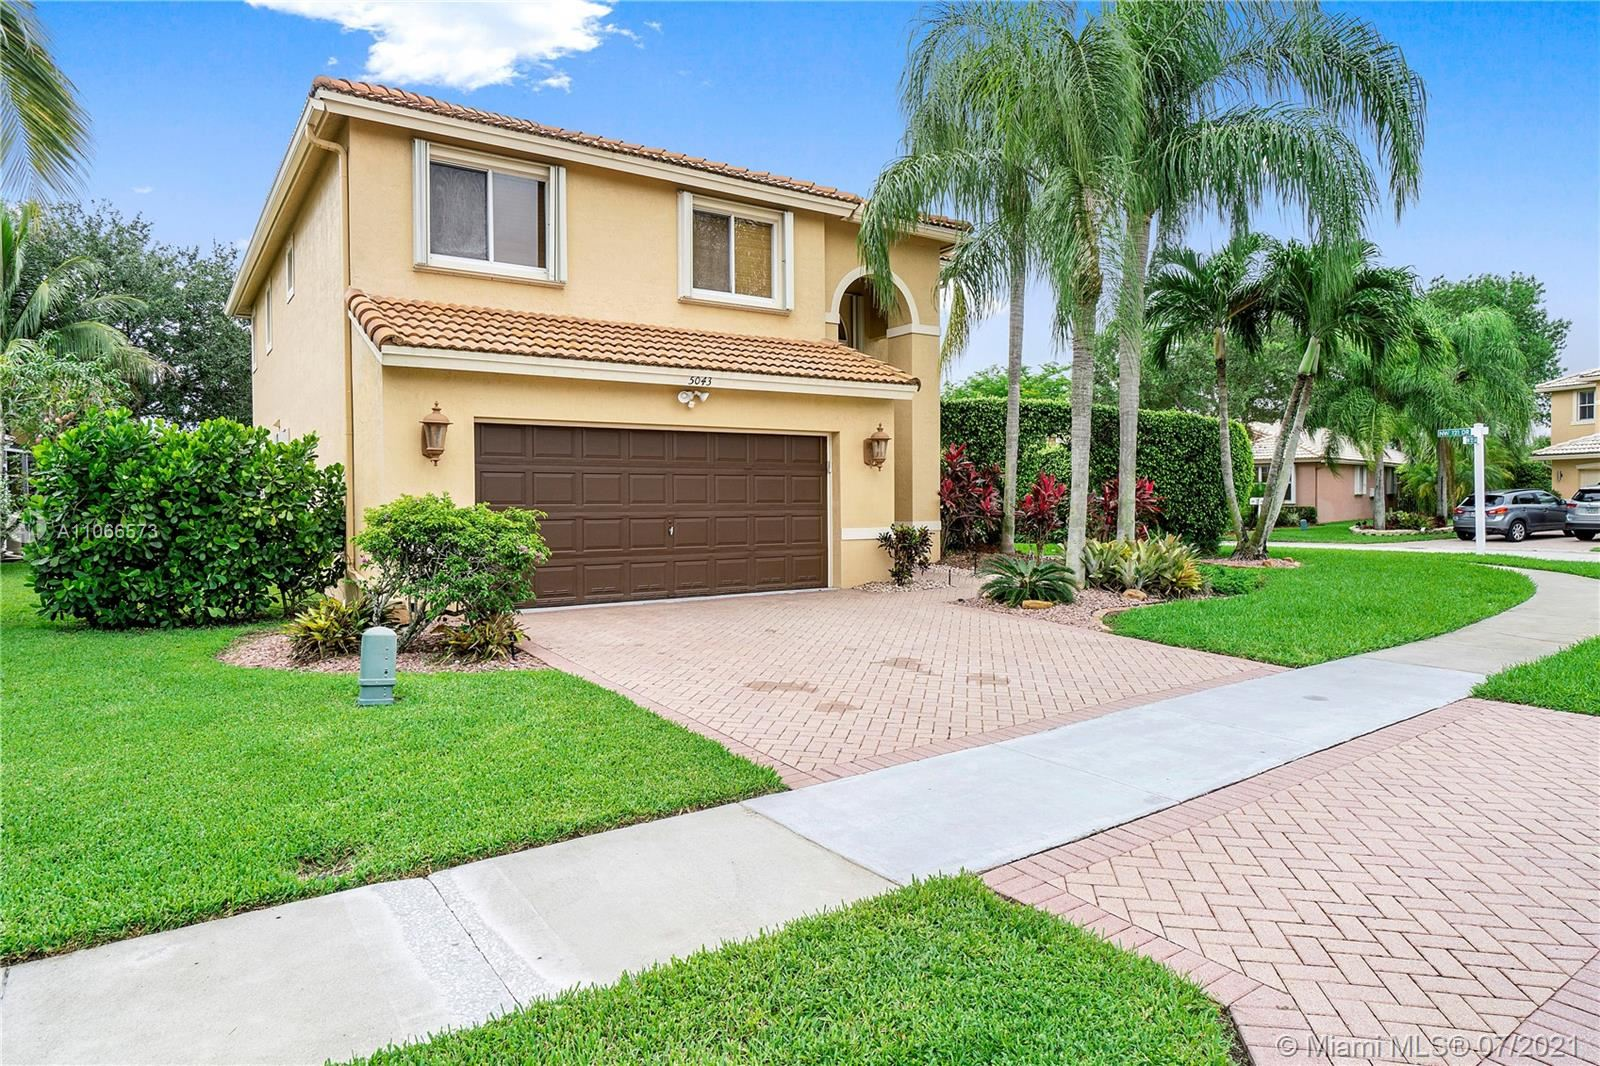 5043 NW 122nd Ave, Coral Springs, FL 33076 - #: A11066573